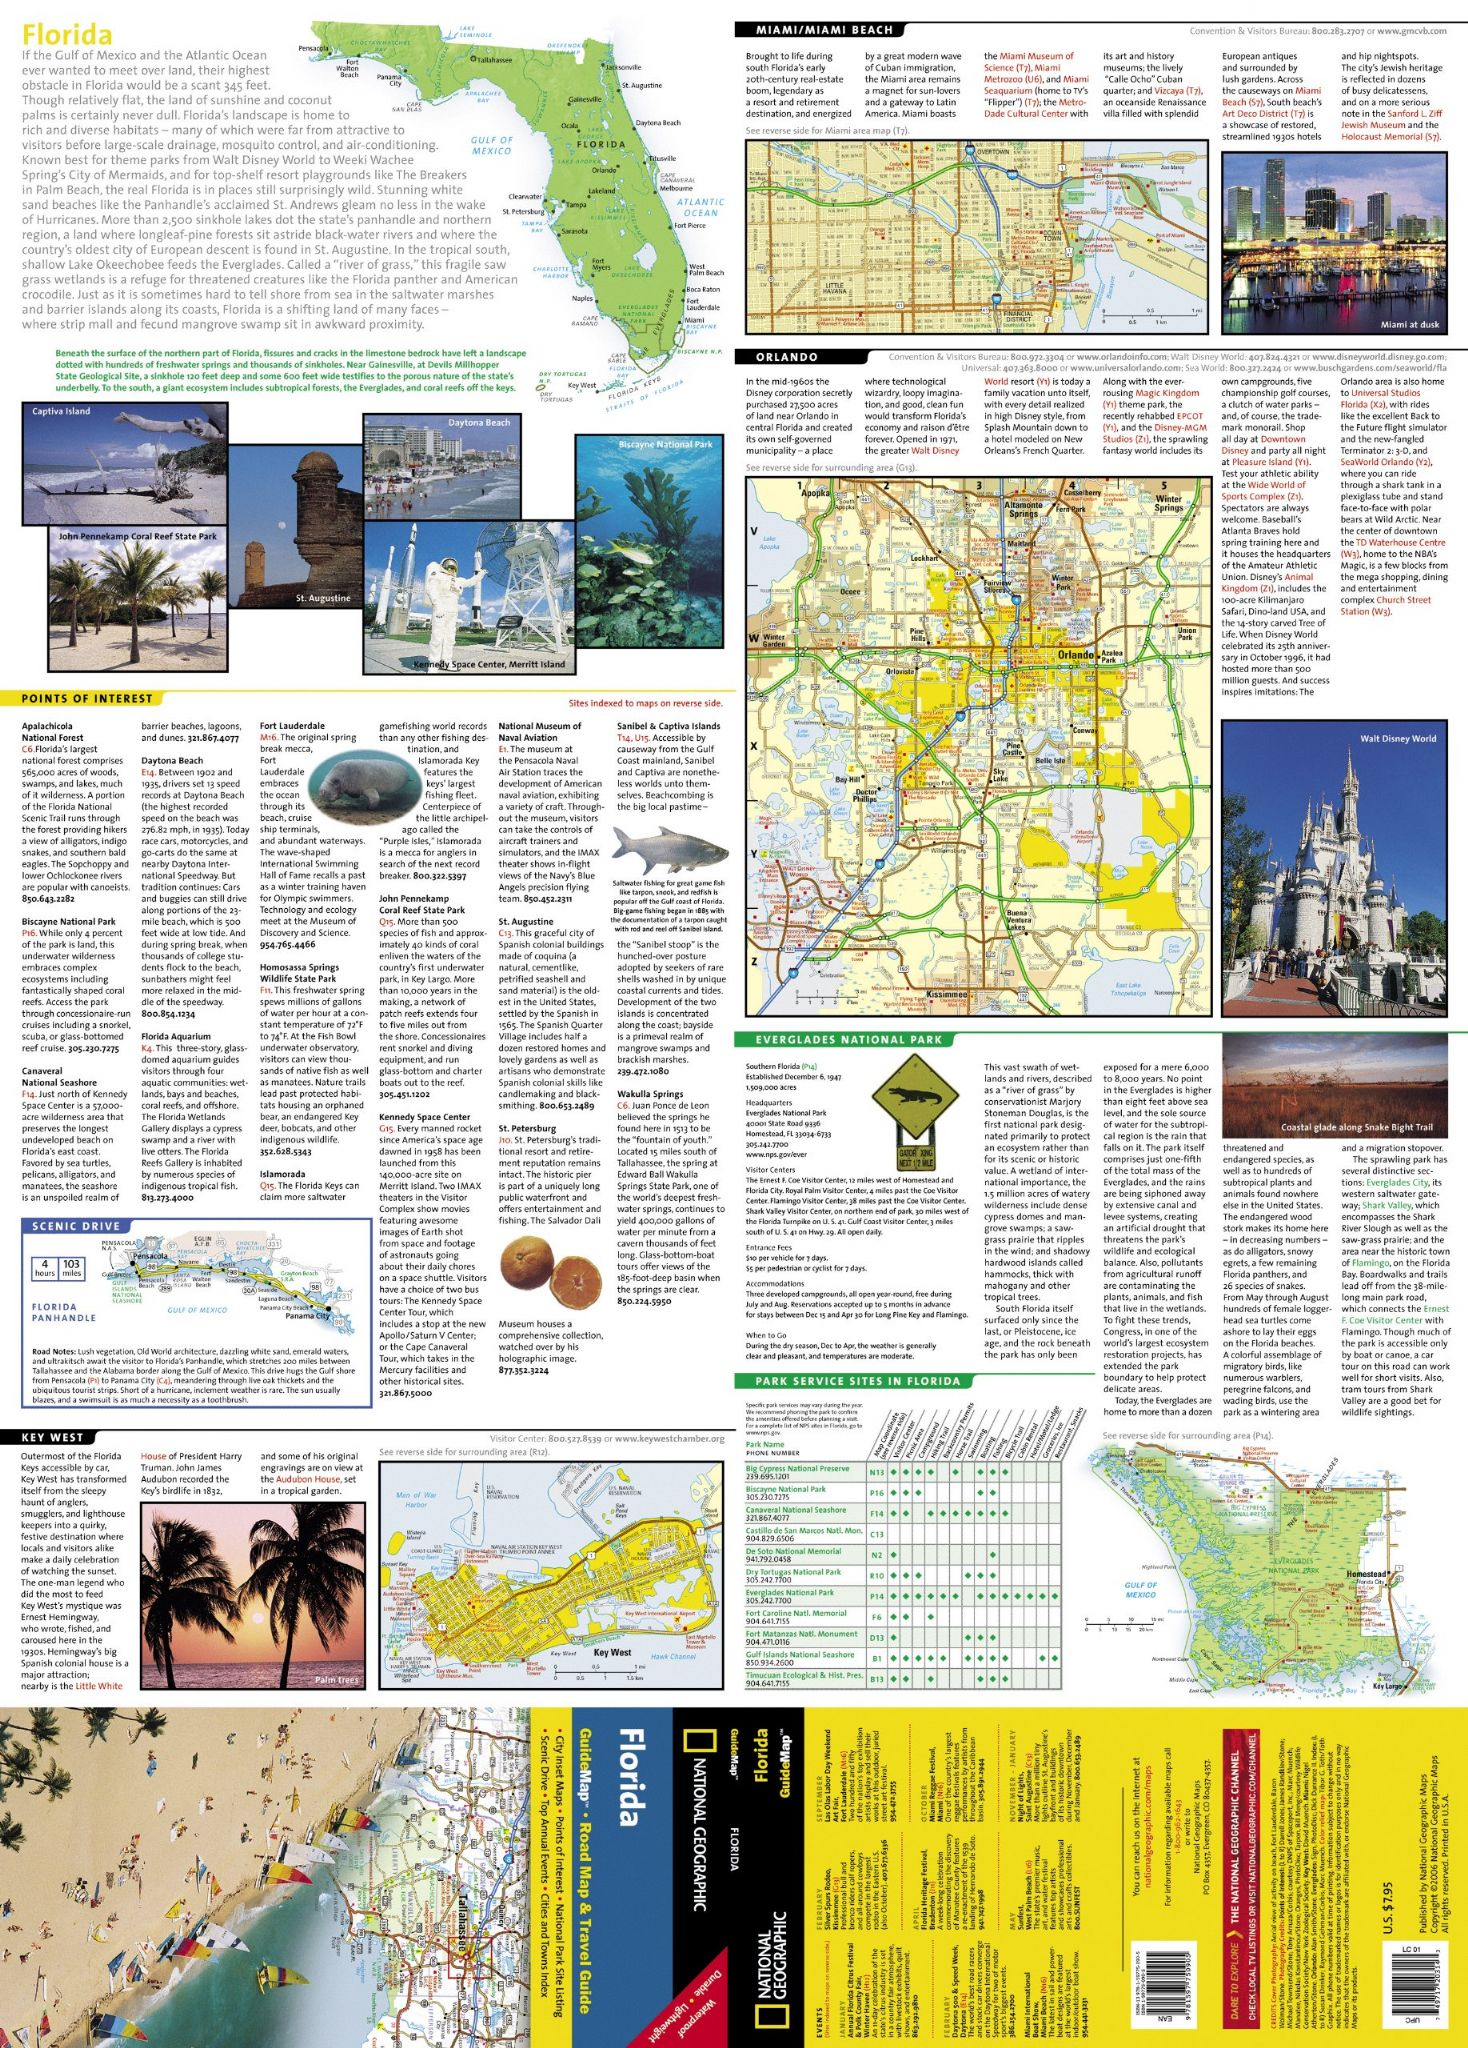 Florida Travel Guide Map.Florida Road Map Travel Guide Gm16